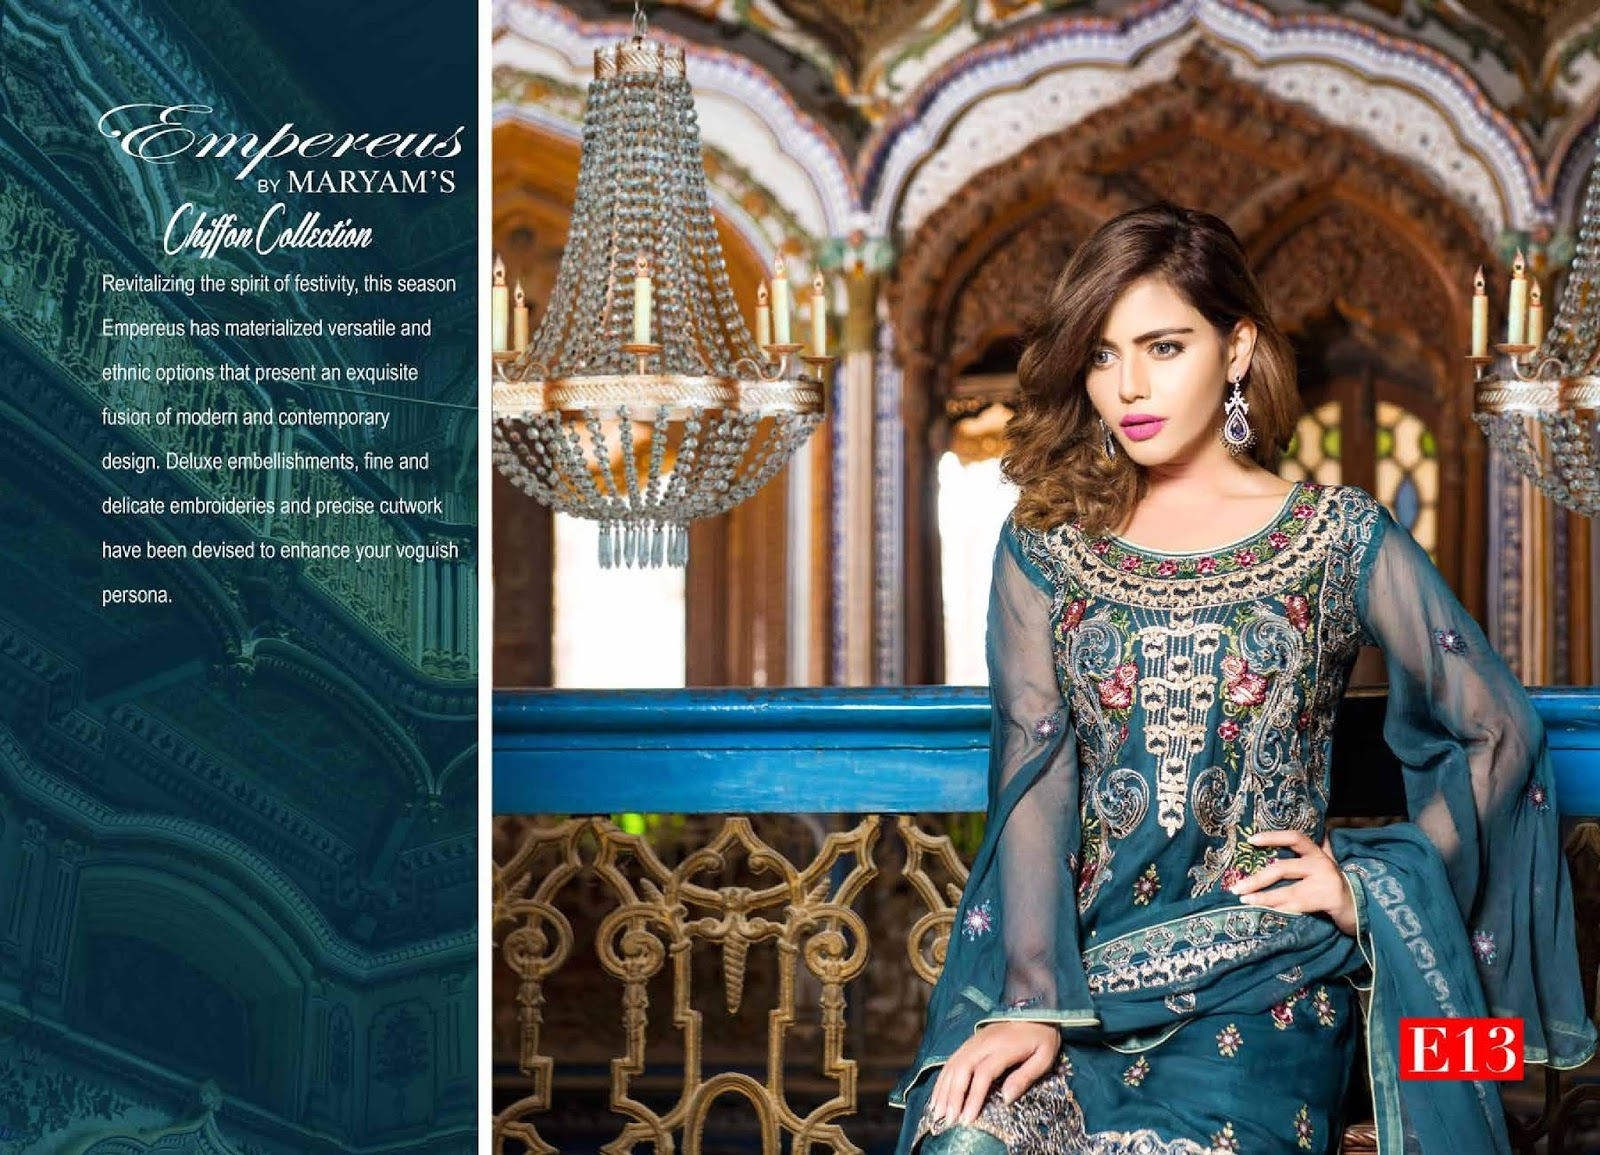 6caae81699 Sold Empereus by MARYAM'S Luxury Chiffon collection. 12 suits in a set. 8  suits with Russian grip trouser. 4 suits with banarsi Jamawar